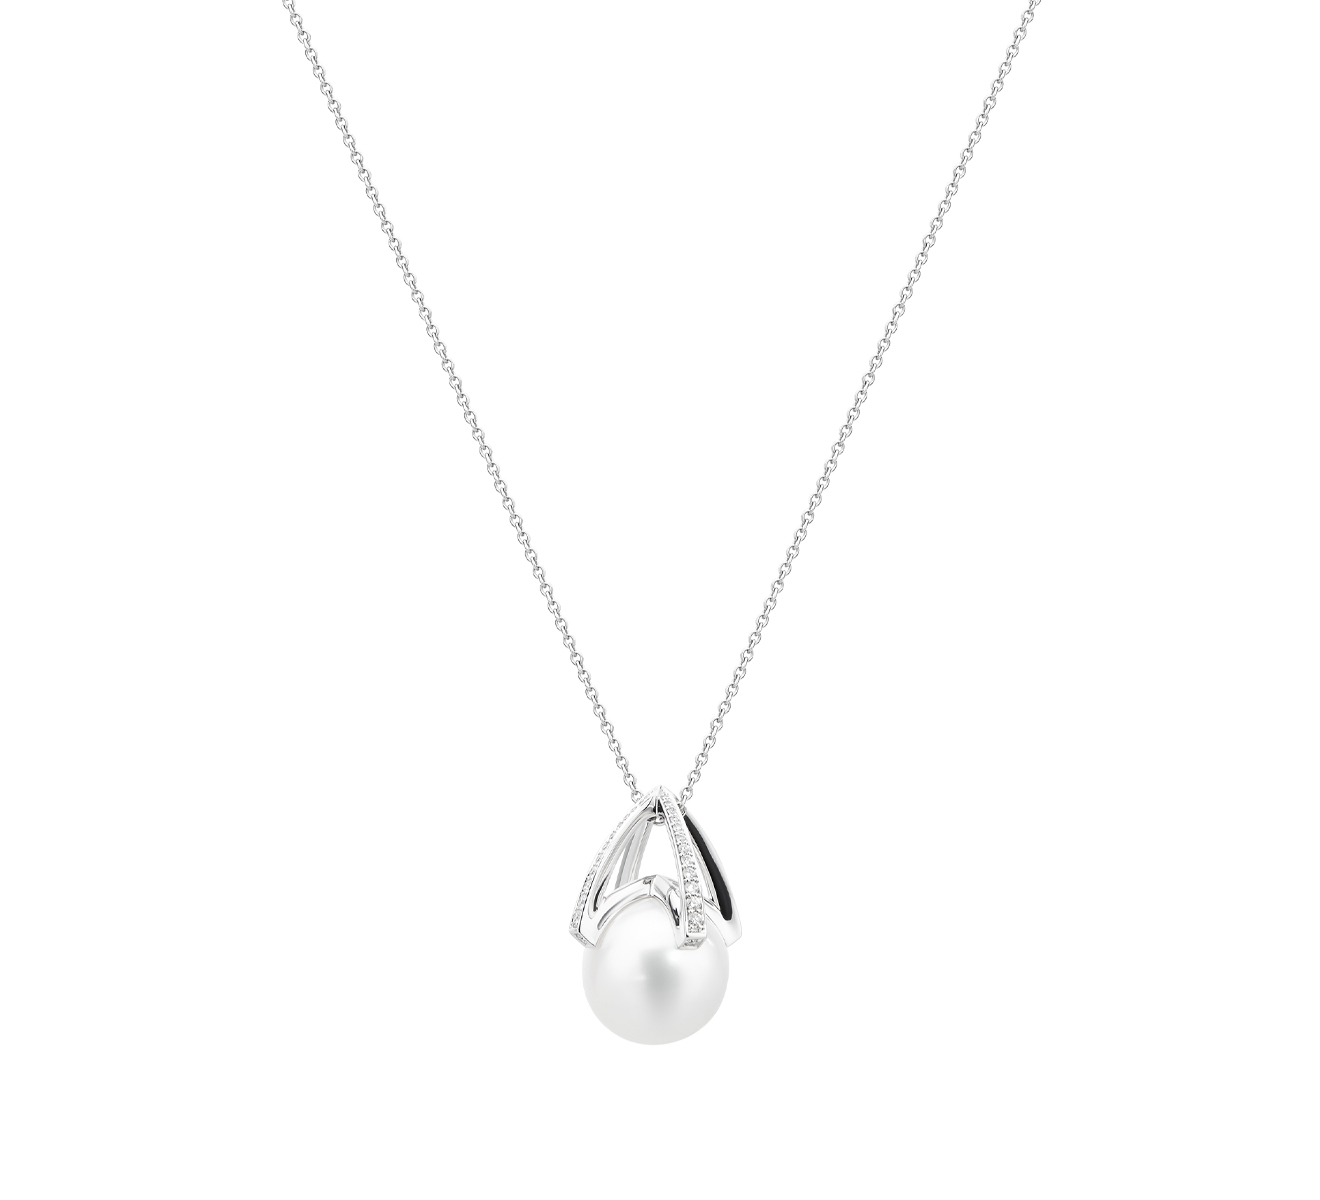 Кулон MIKIMOTO M collection MPA 10283 NDXW - фото 2 – Mercury